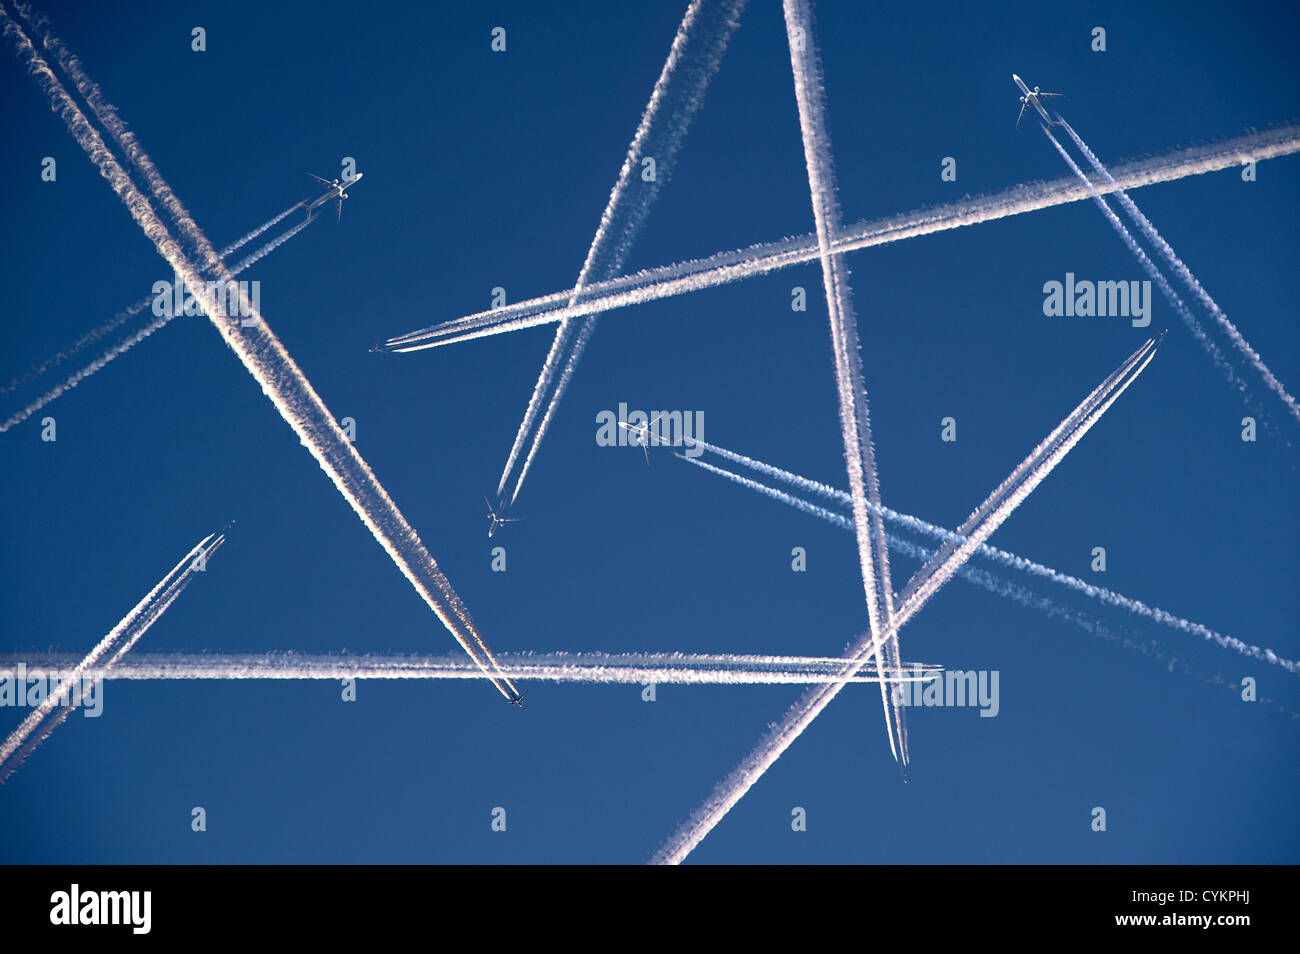 More and more airplanes are flying in the air - Stock Image